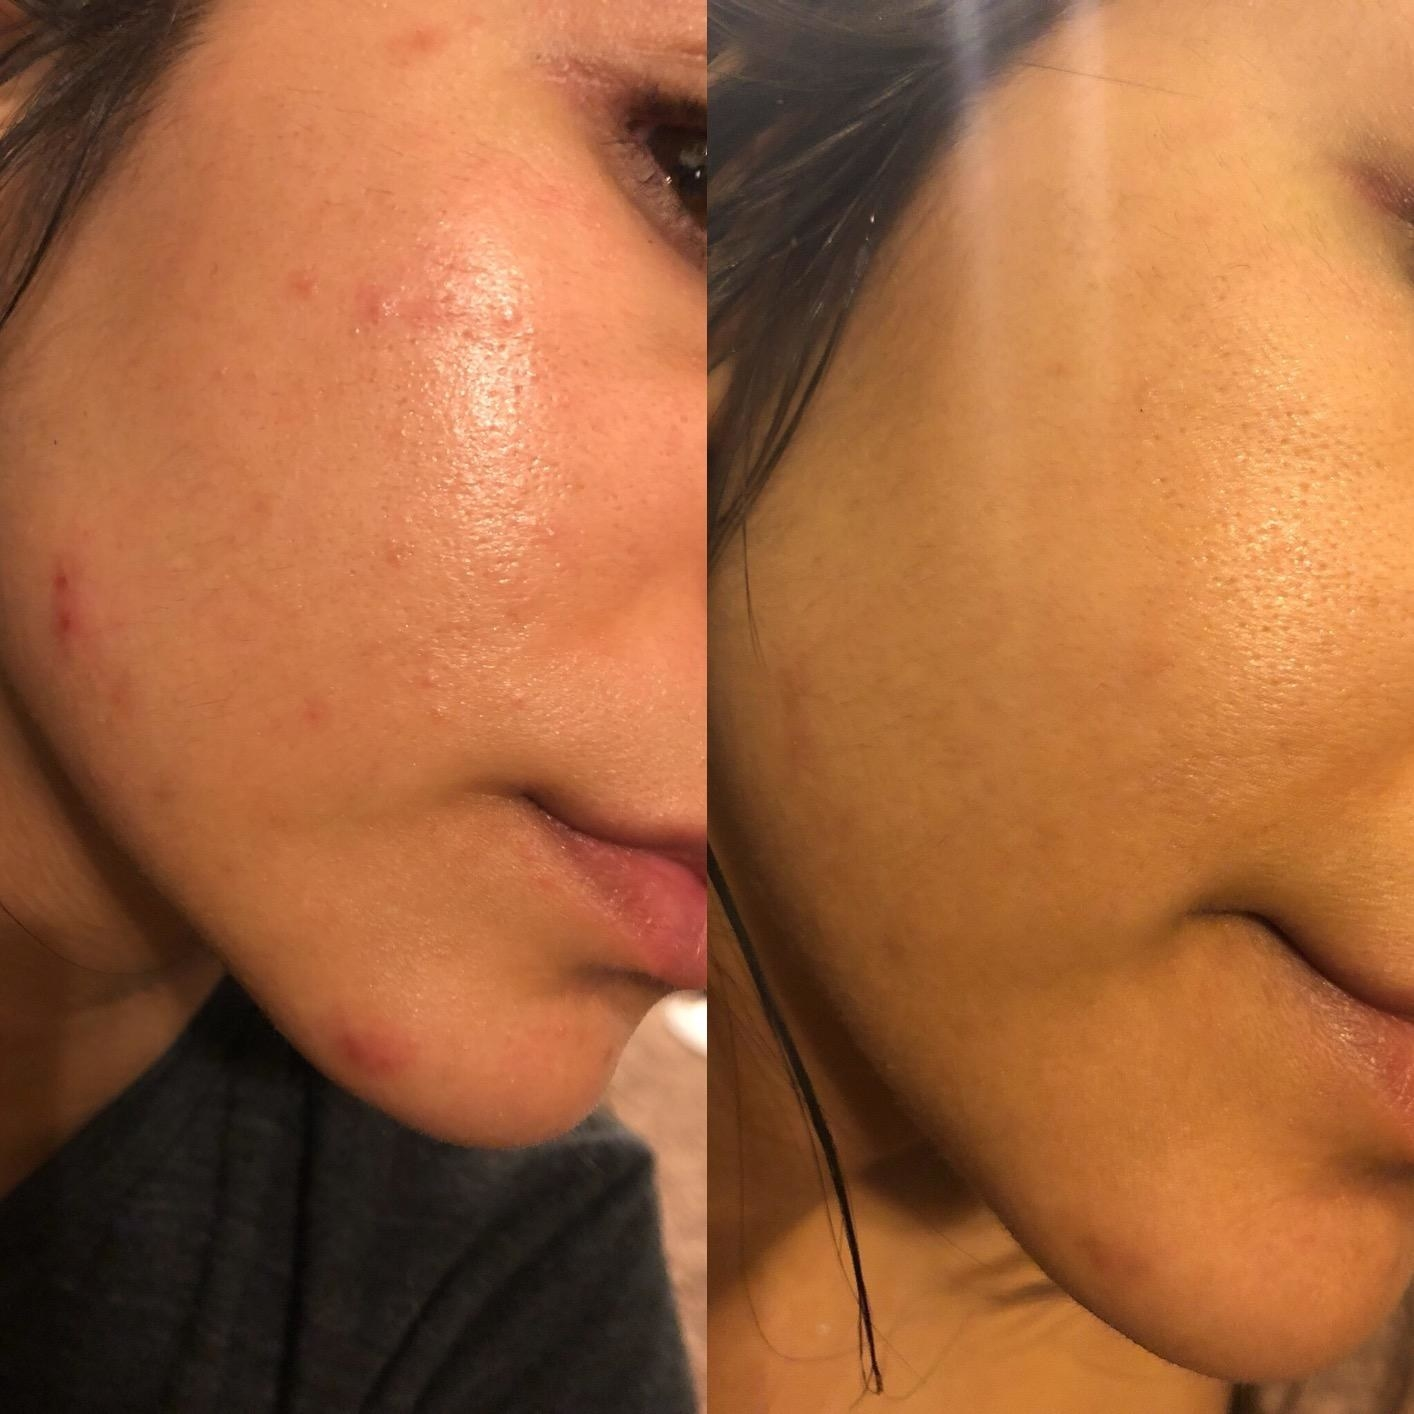 Before and after showing the scrub evened reviewer's skin tone and helped get rid of breakouts on their cheek and chin